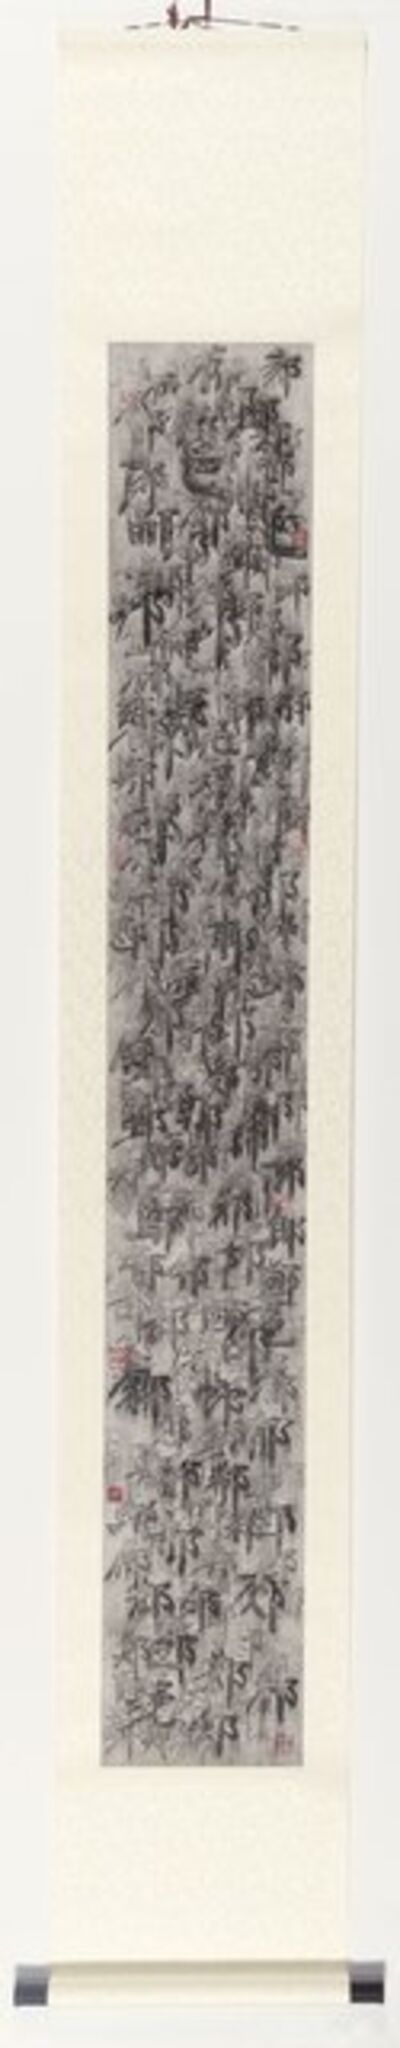 Qiu Zhijie, 'Untitled (Small Scroll)', circa 1998